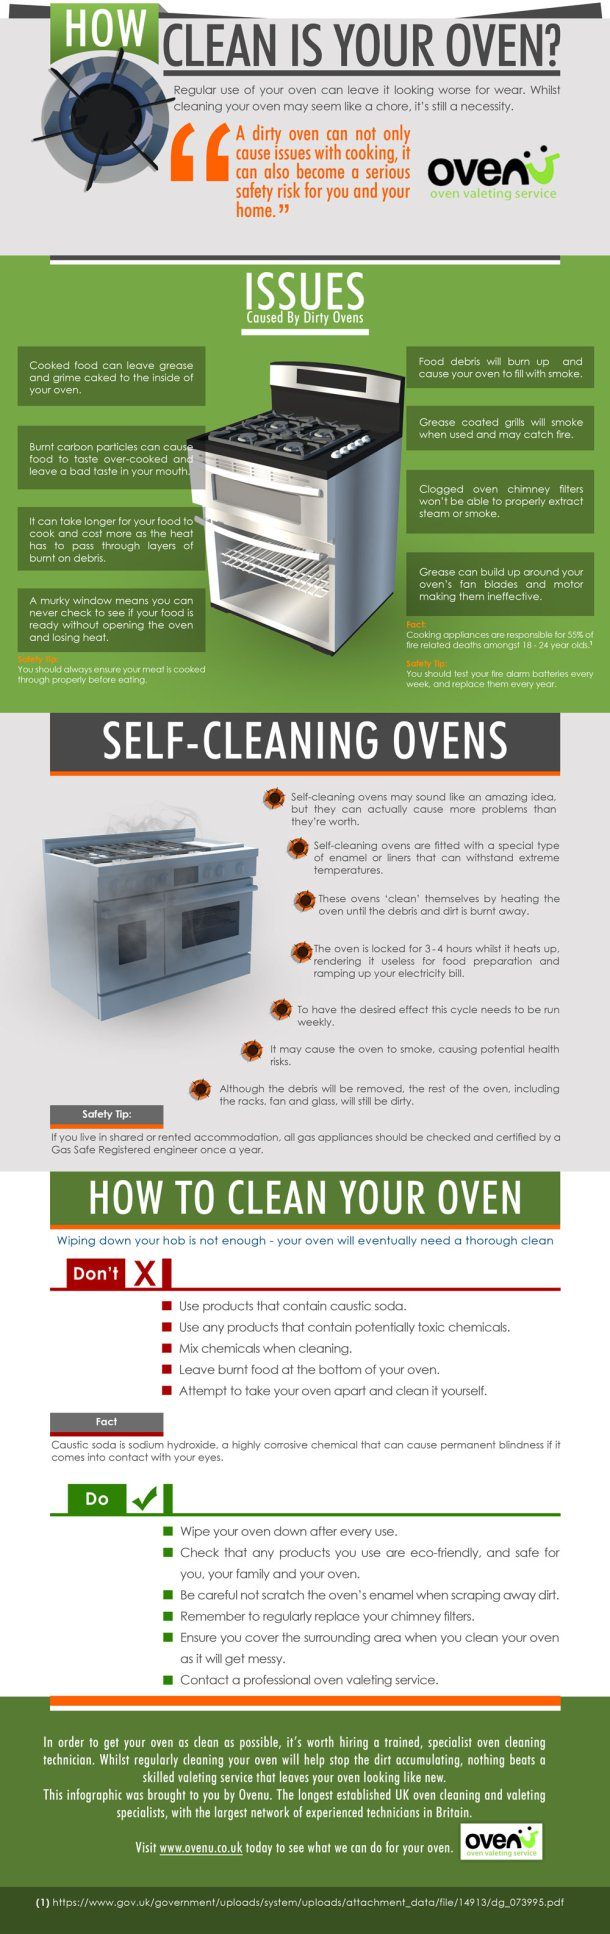 How clean is your oven infographic oven clean infographics how clean is your oven infographic oven clean oven cleaningcleaning tipsdiy solutioingenieria Image collections